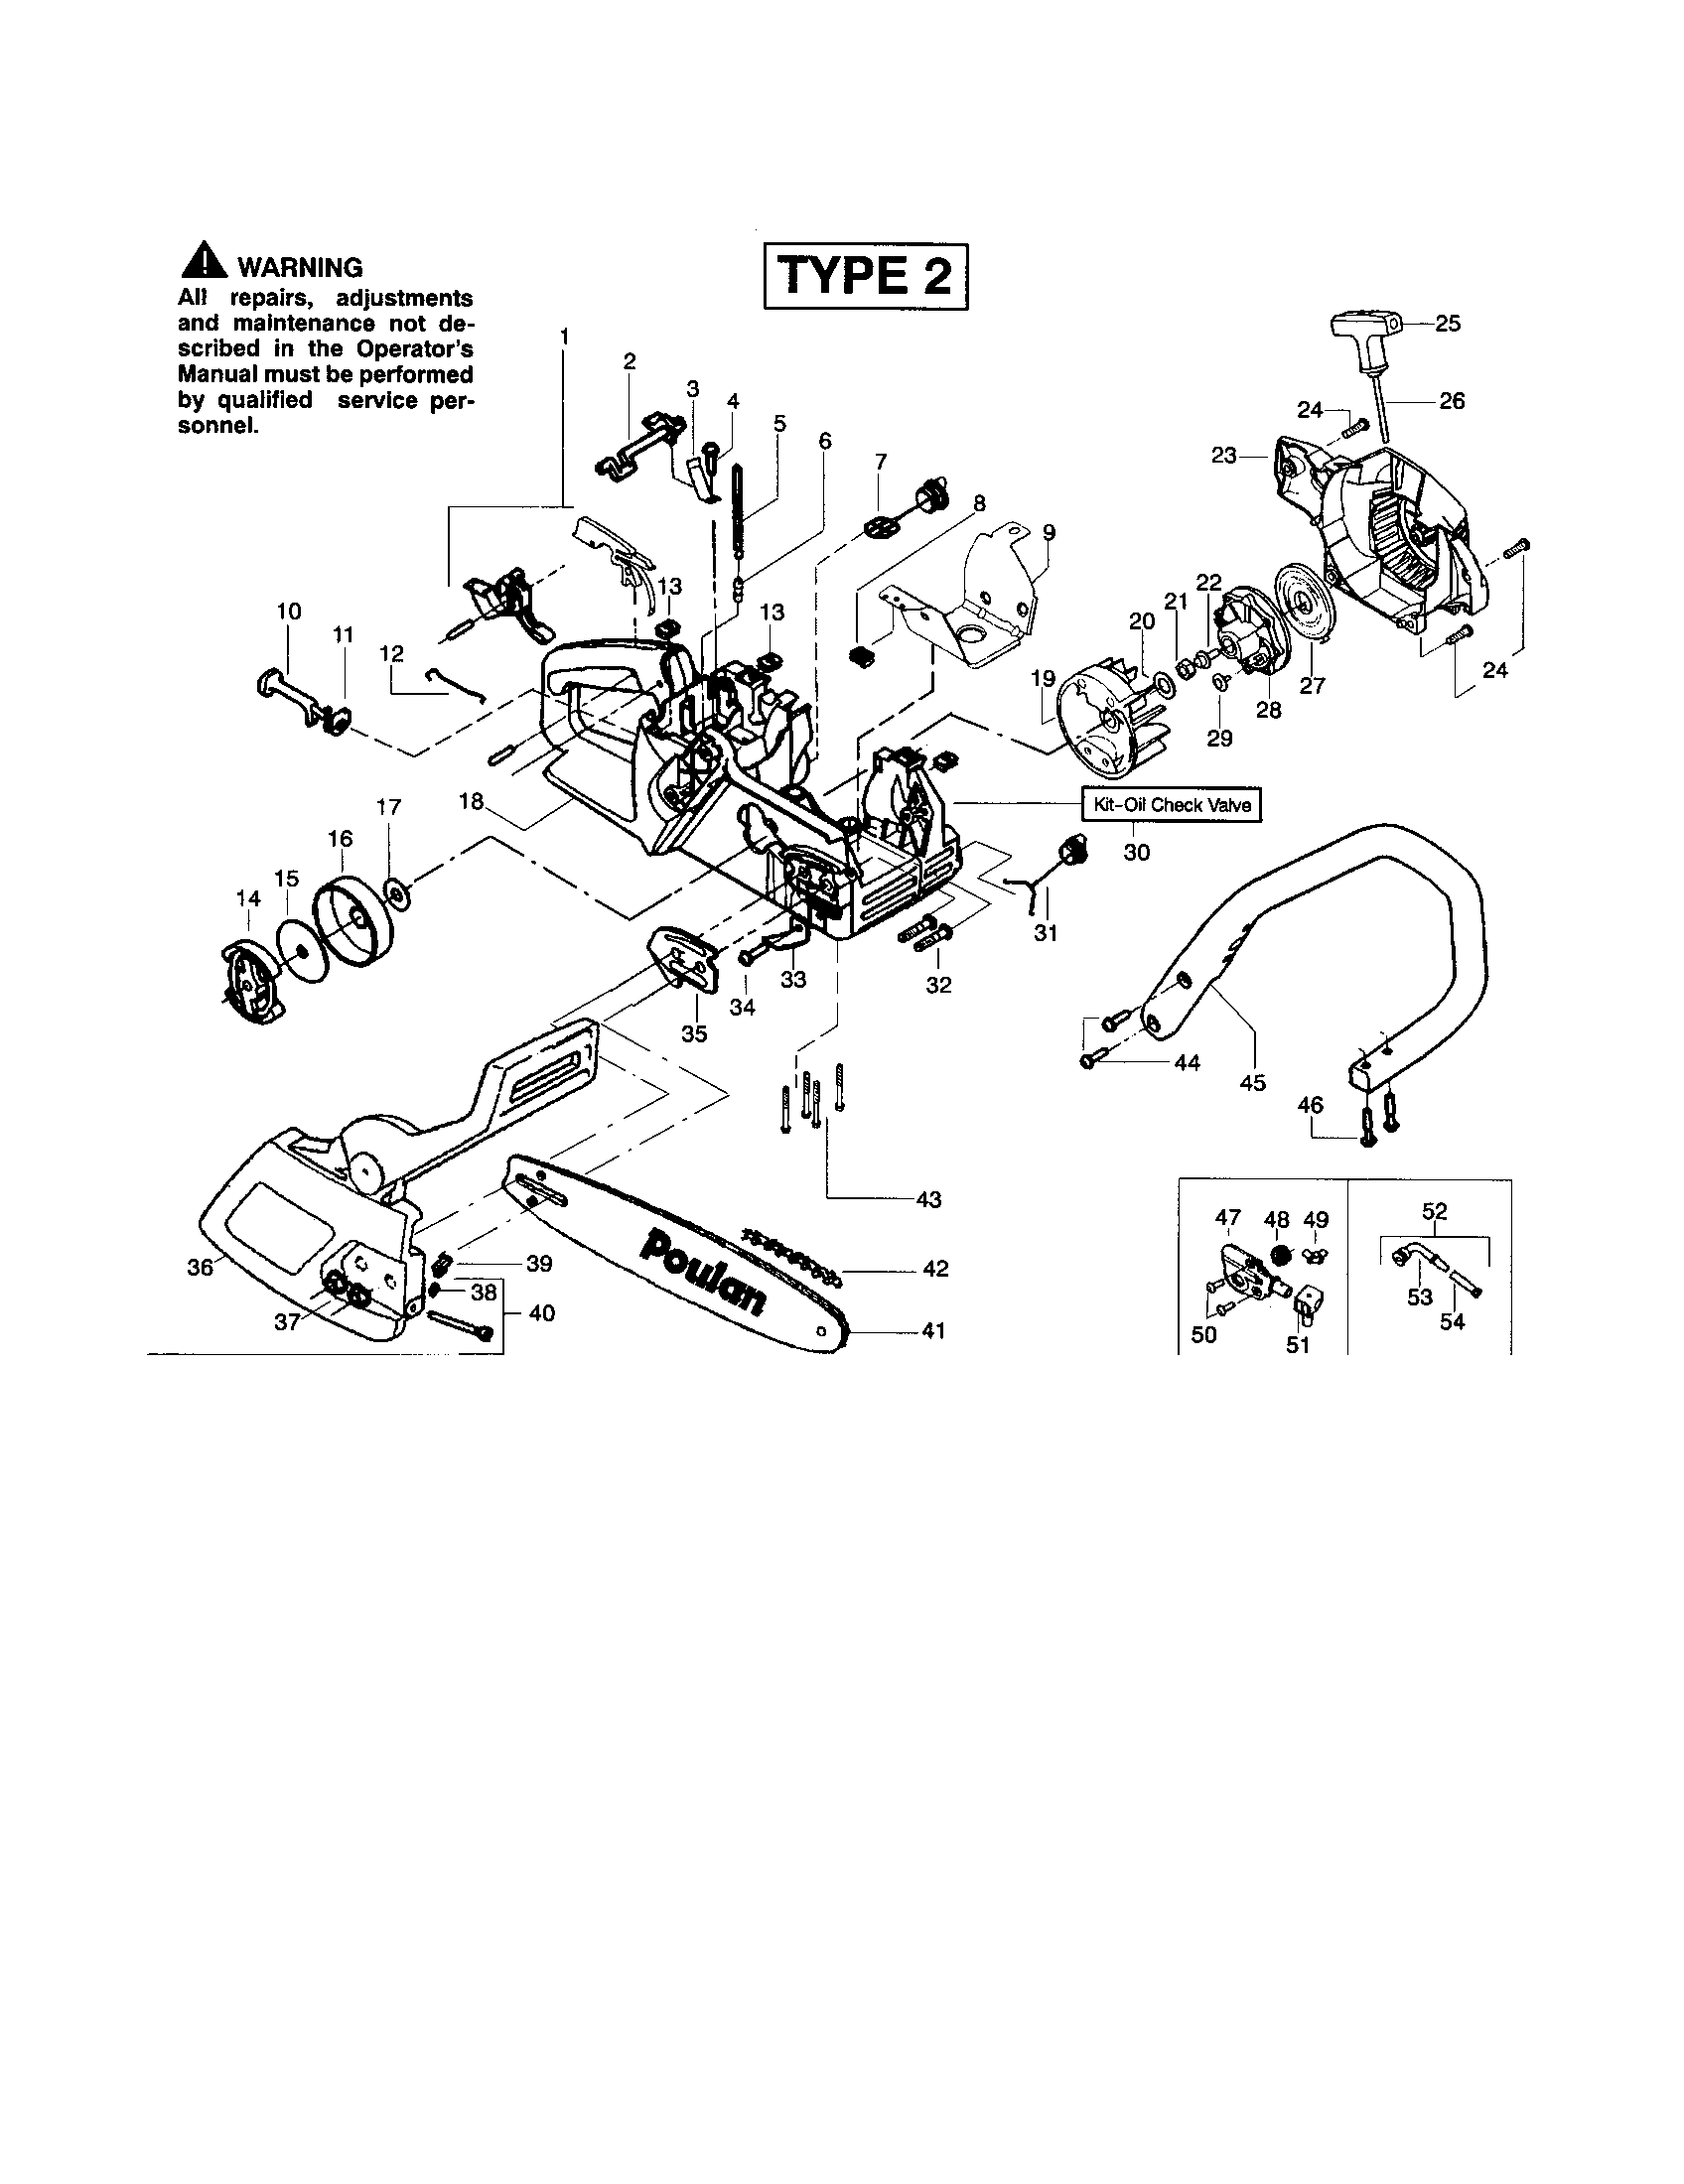 Poulan 2150 Fuel Line Diagram